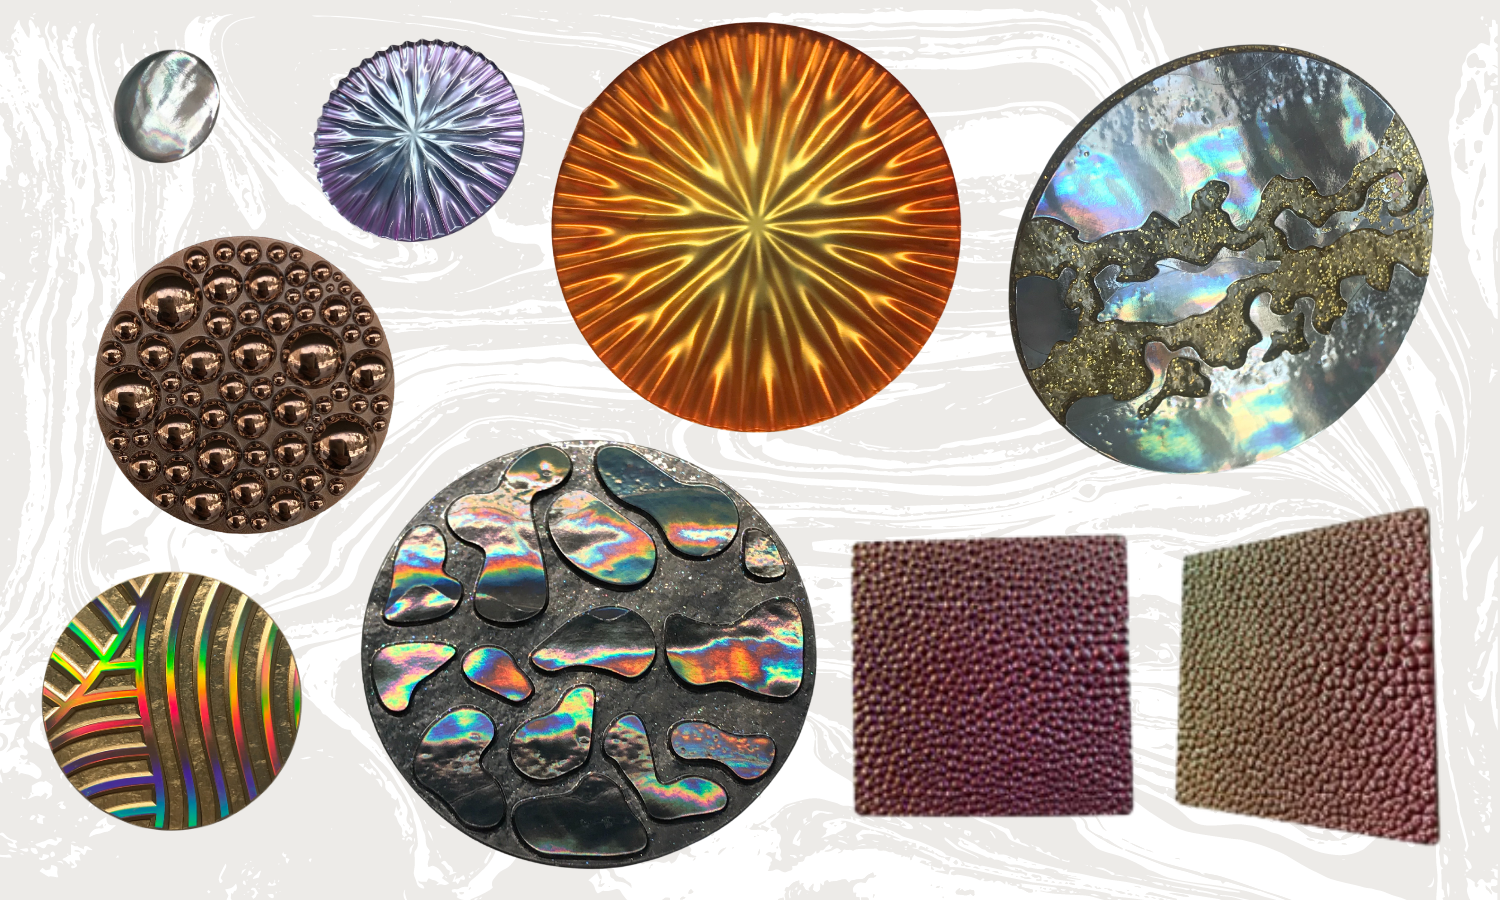 circular parts - water droplets, mother of pearl finishes, sunburst designs, holographic prisms